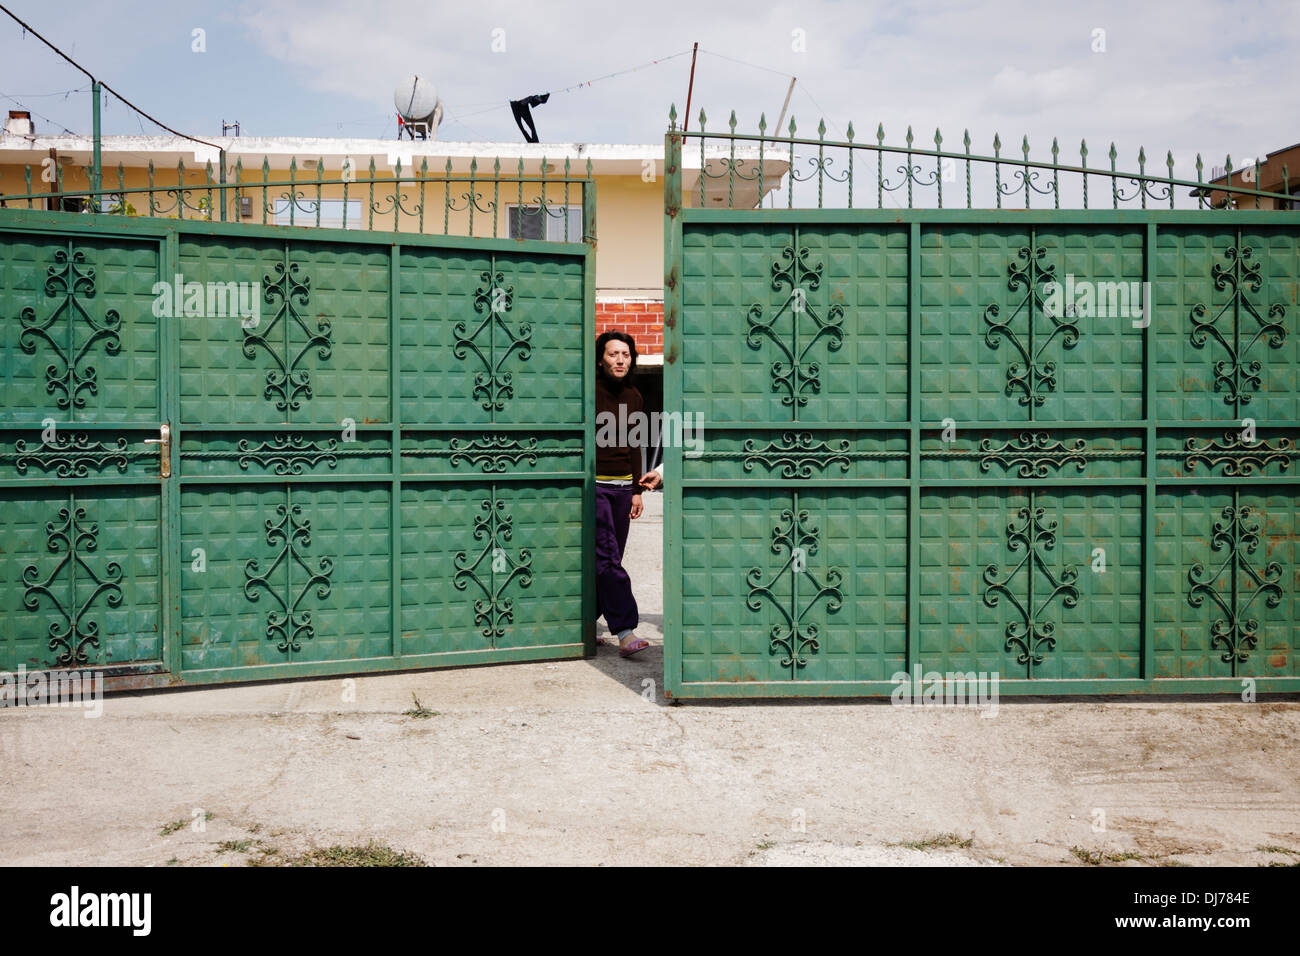 Albanian woman living locked at home under the threat of Kanun blood feud. - Stock Image